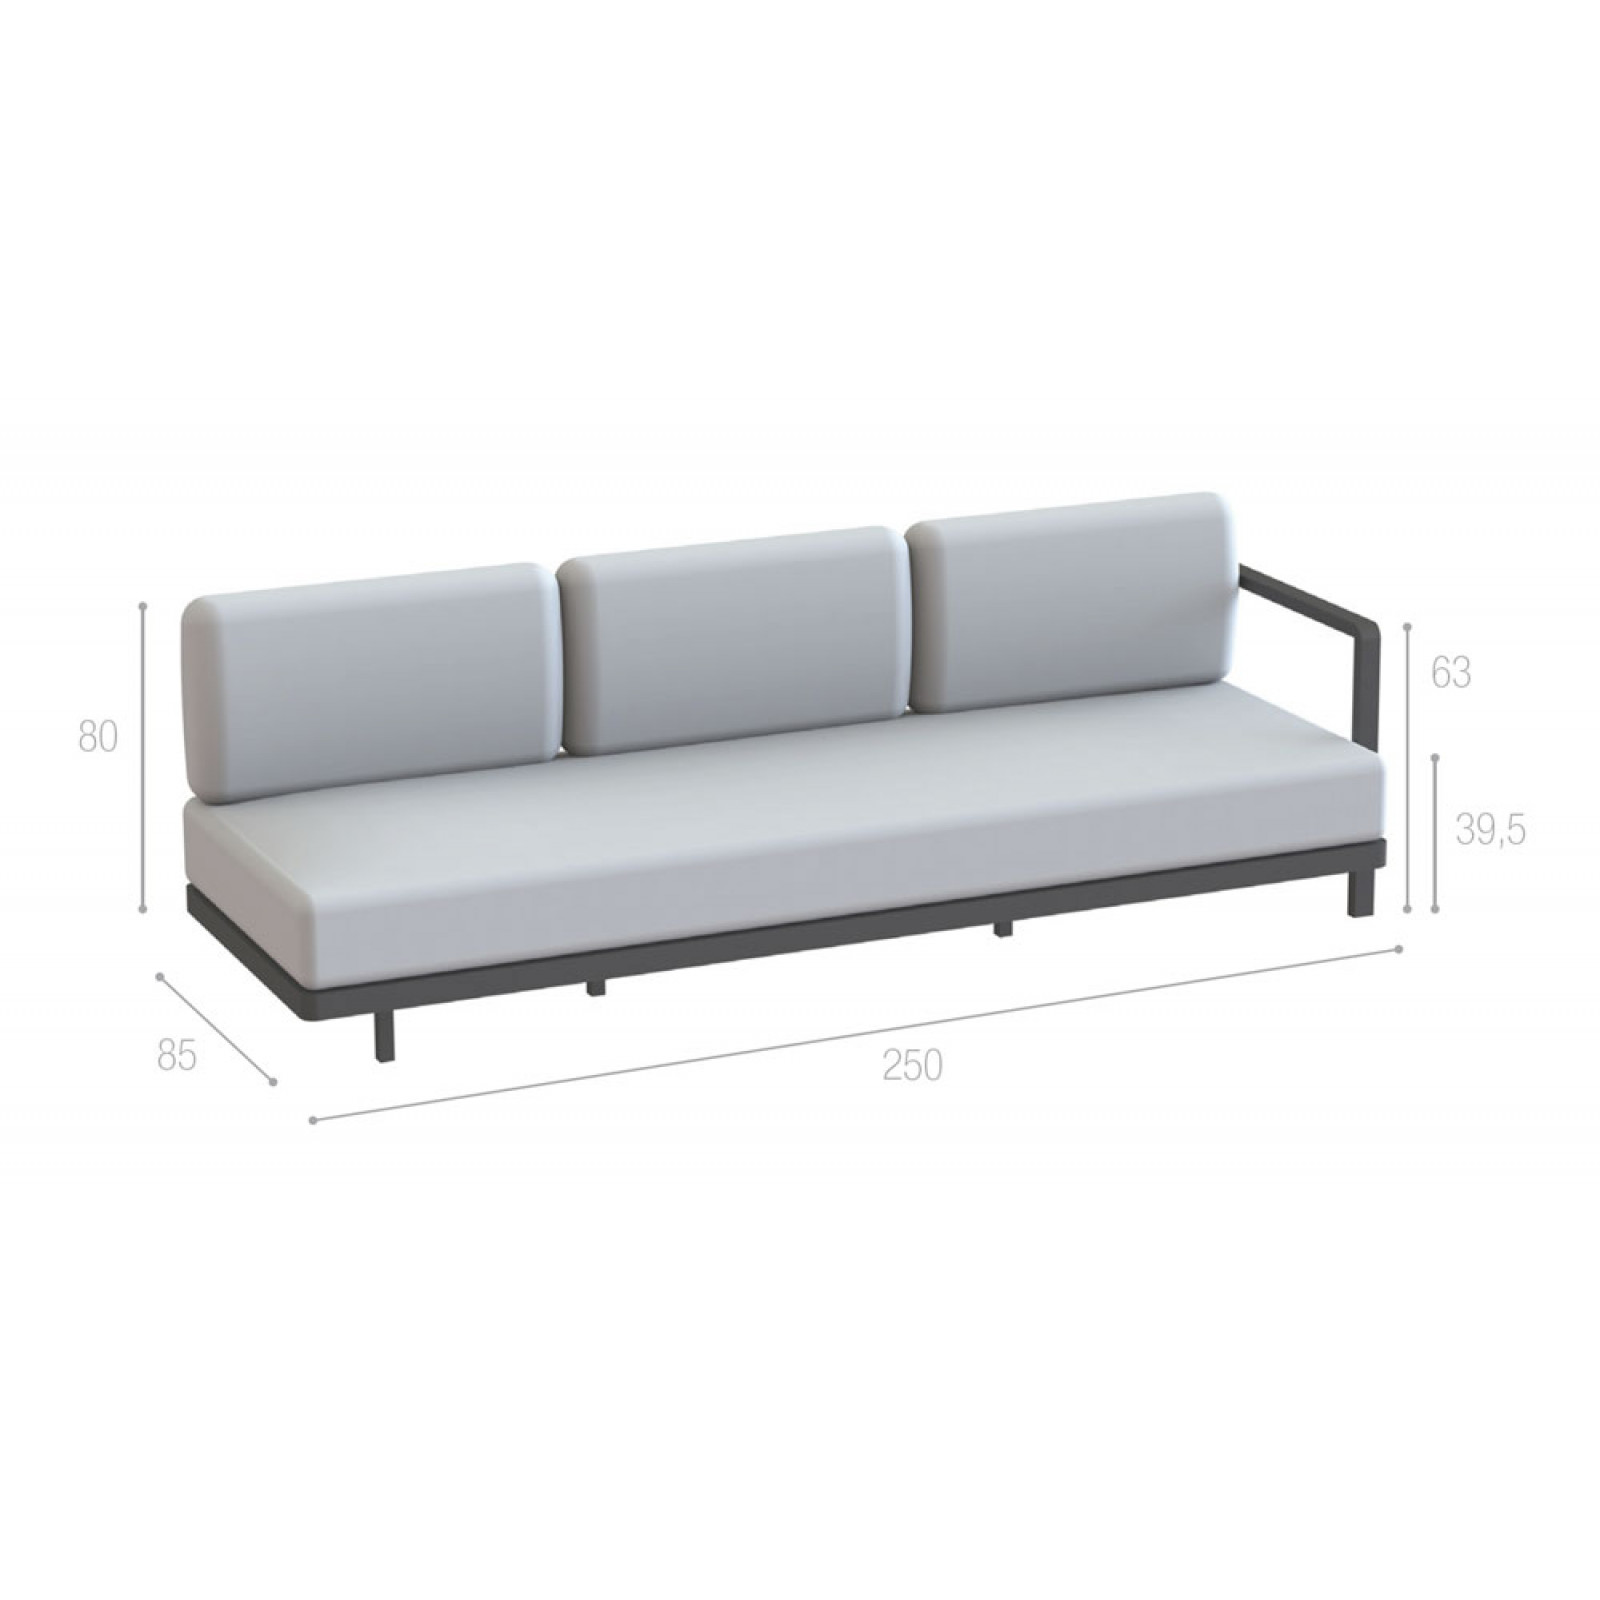 Royal Botania Red Label • Alura Lounge Endmodul 240 links